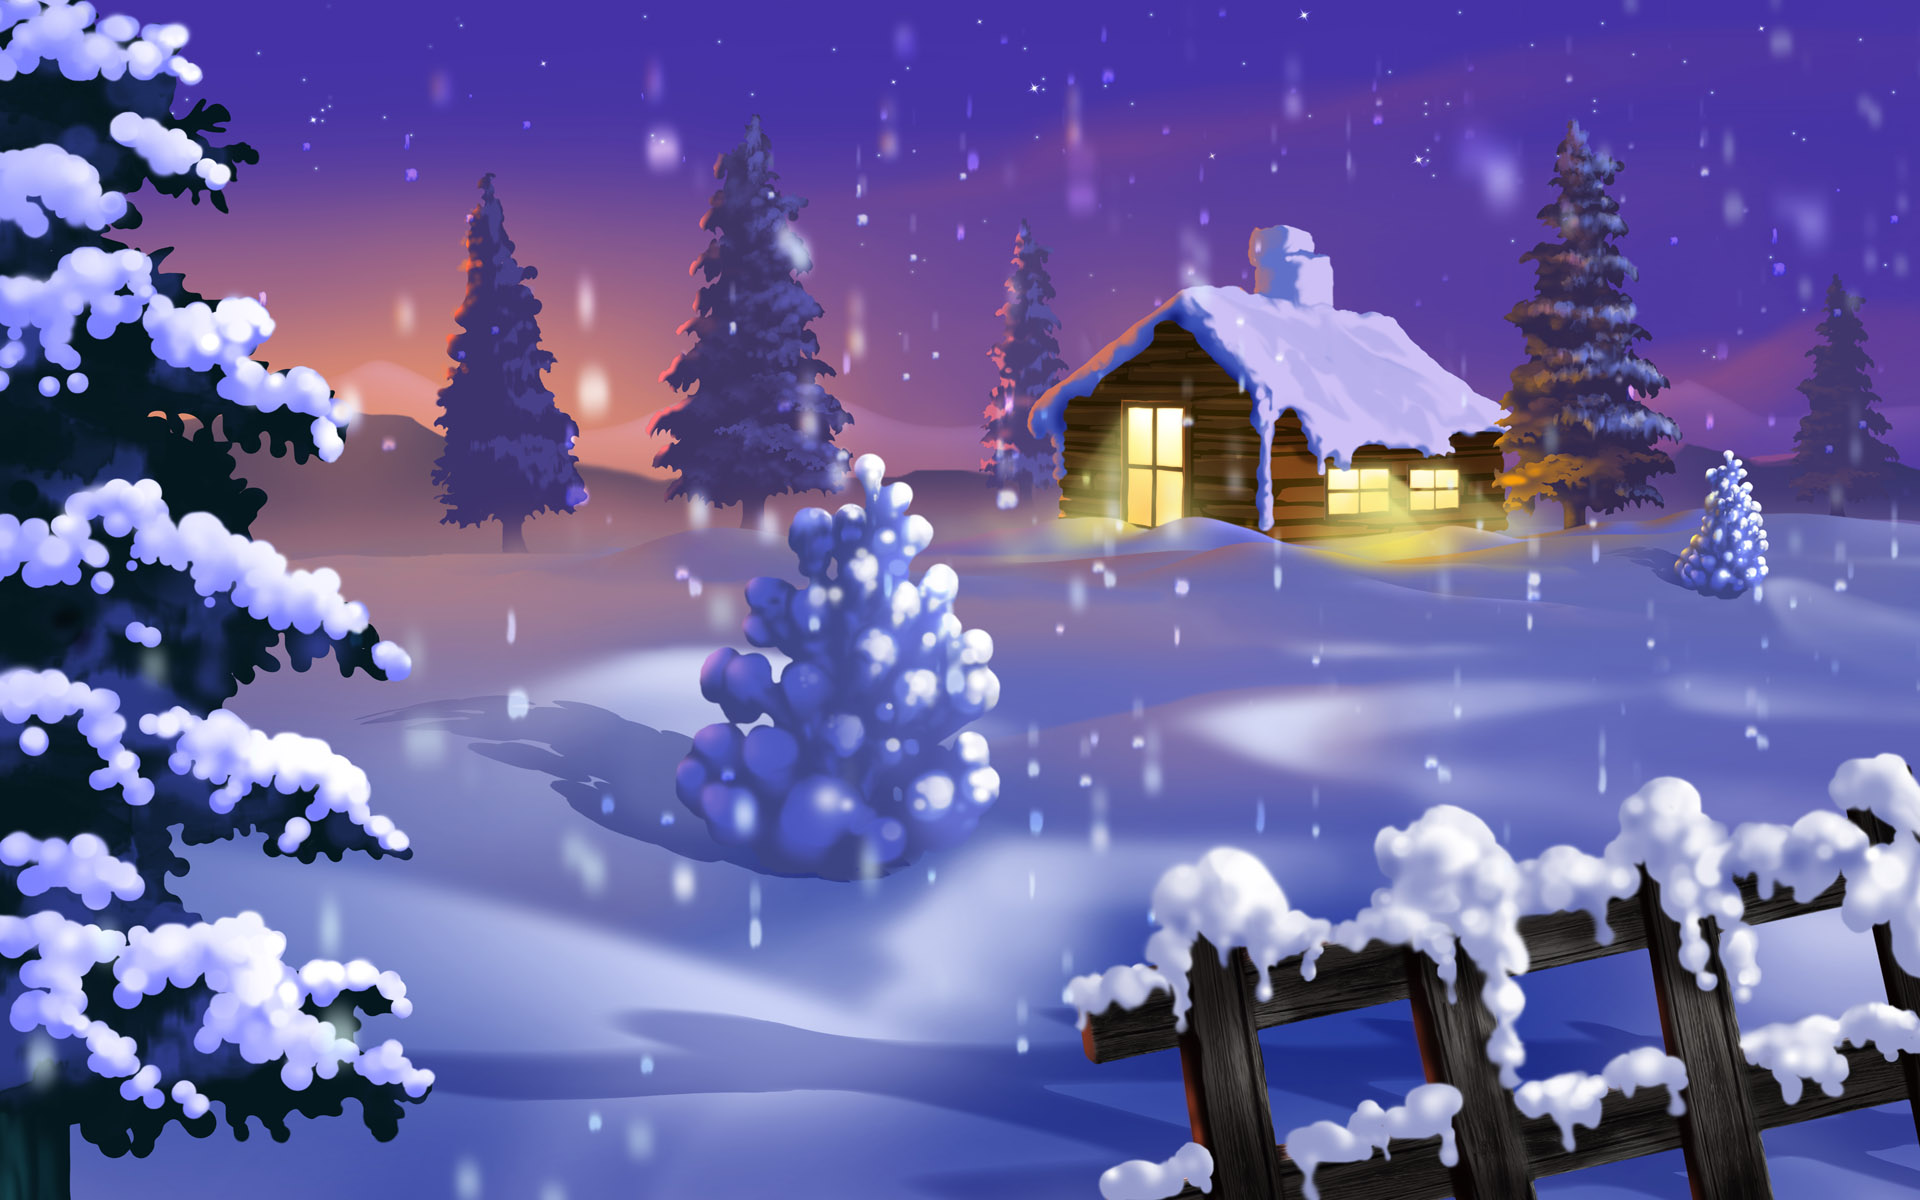 ... Wallpapers | Free Christmas Winter Wallpapers Download | Desktop